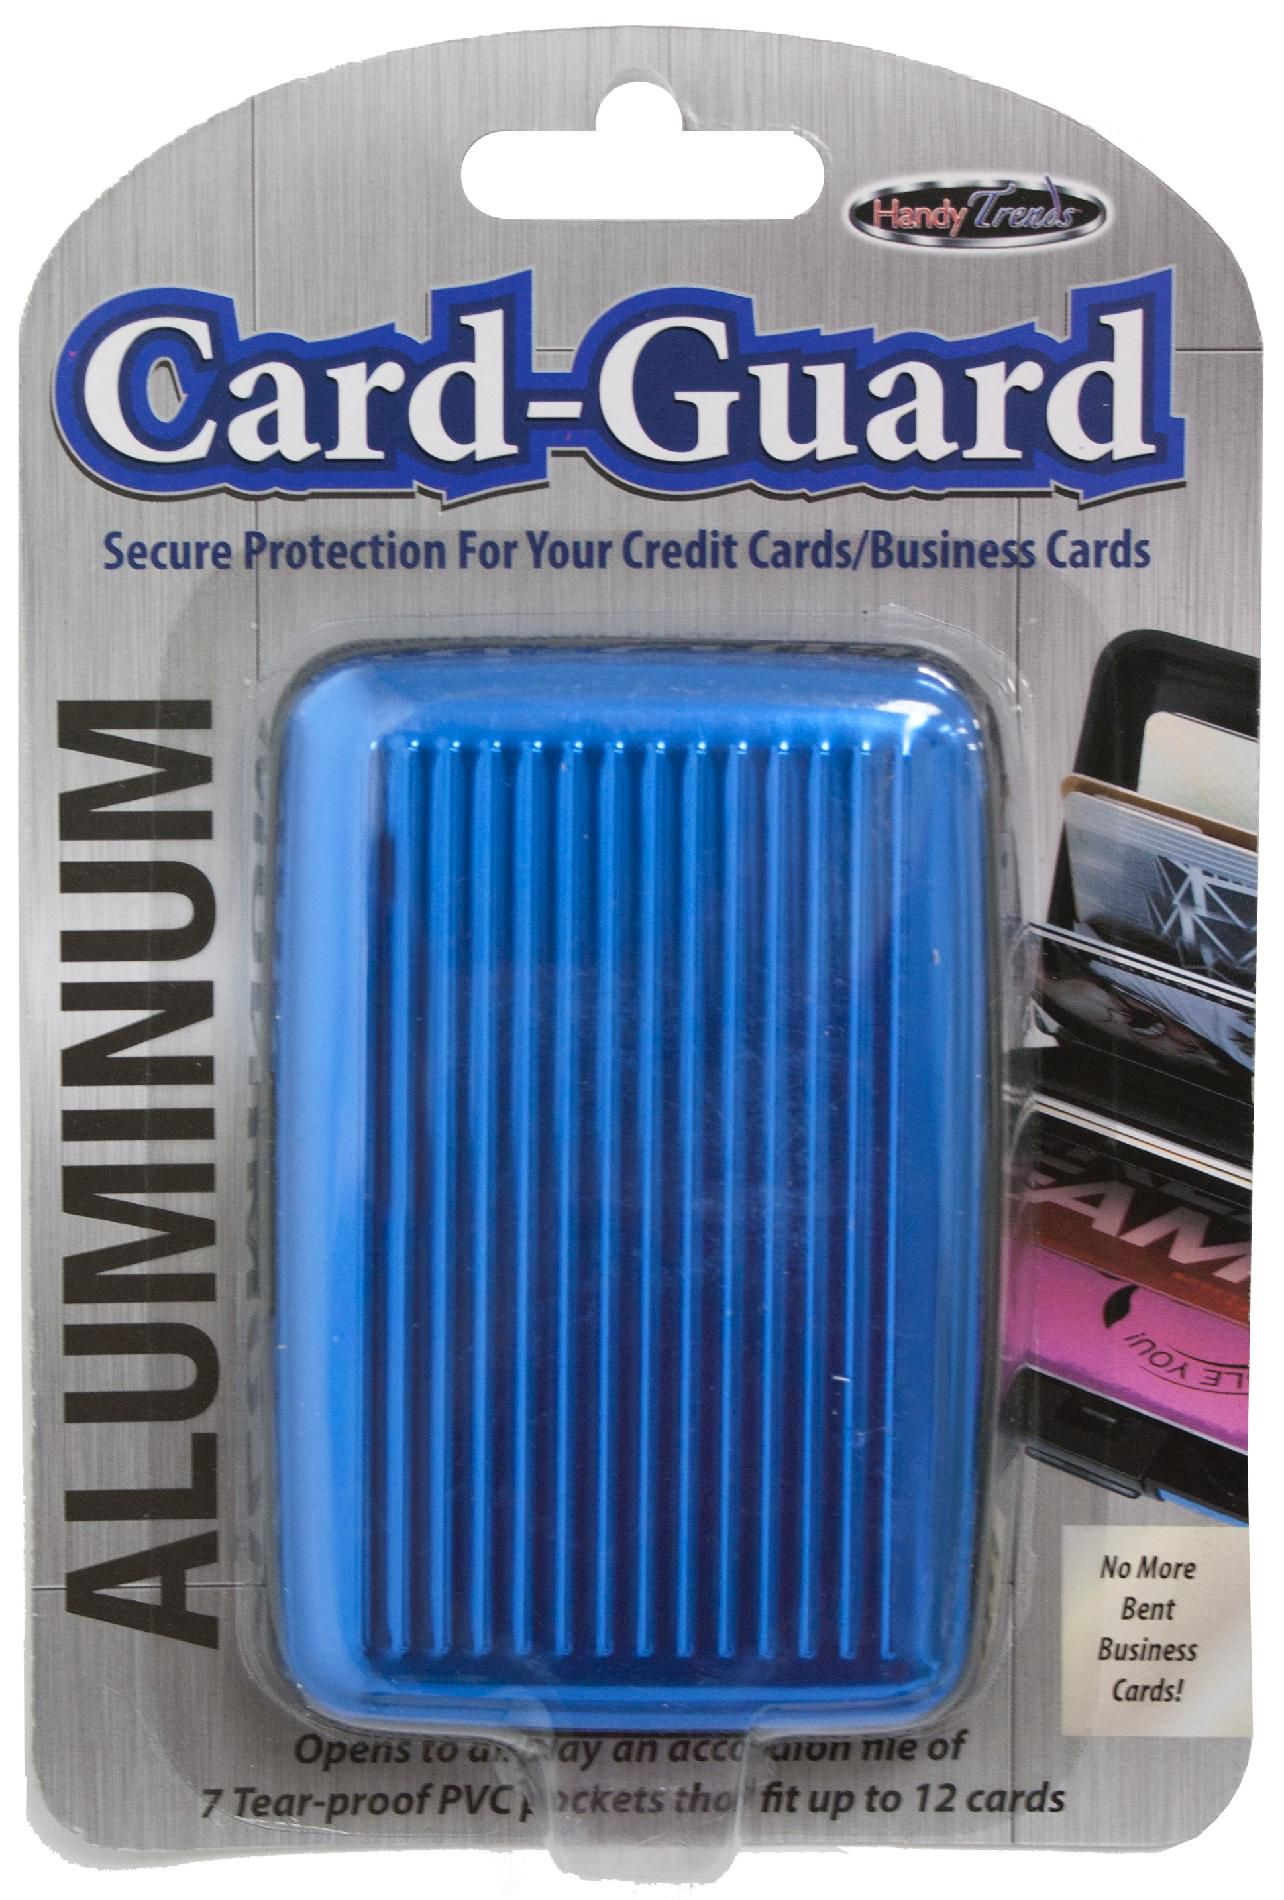 Handy Trends Card Guard Wallet